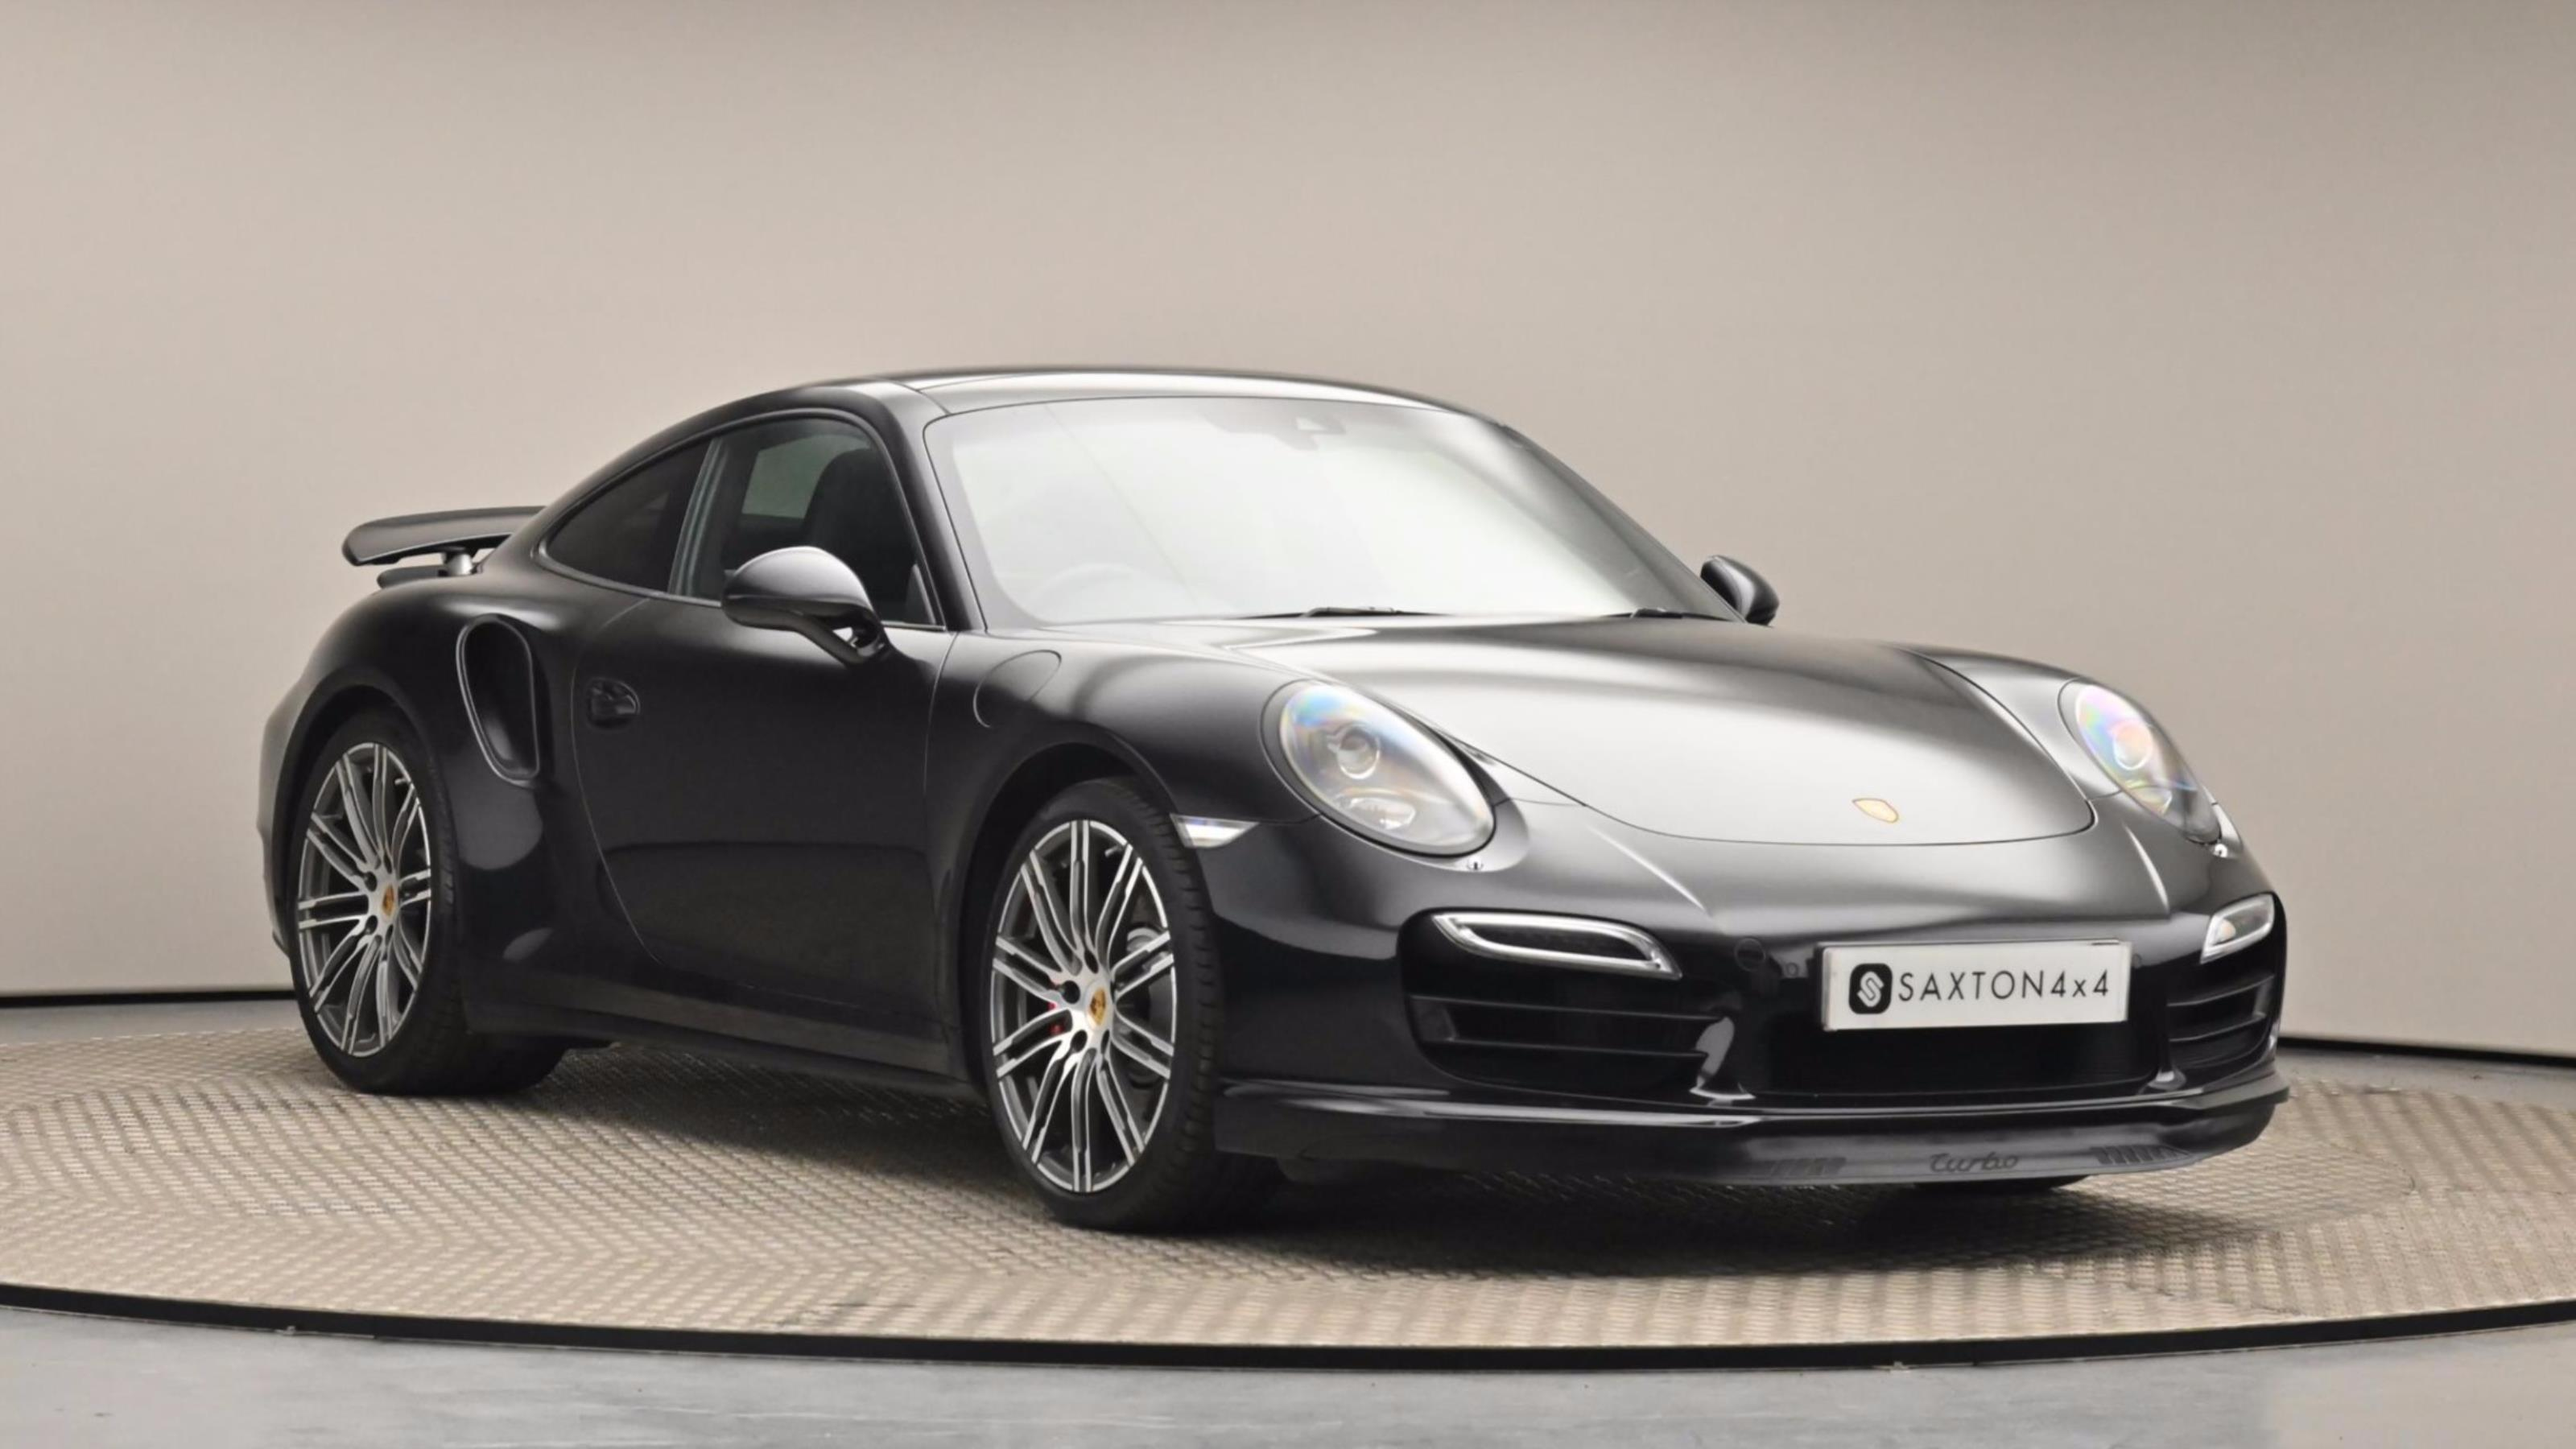 Used 2015 Porsche 911 2dr PDK Black at Saxton4x4